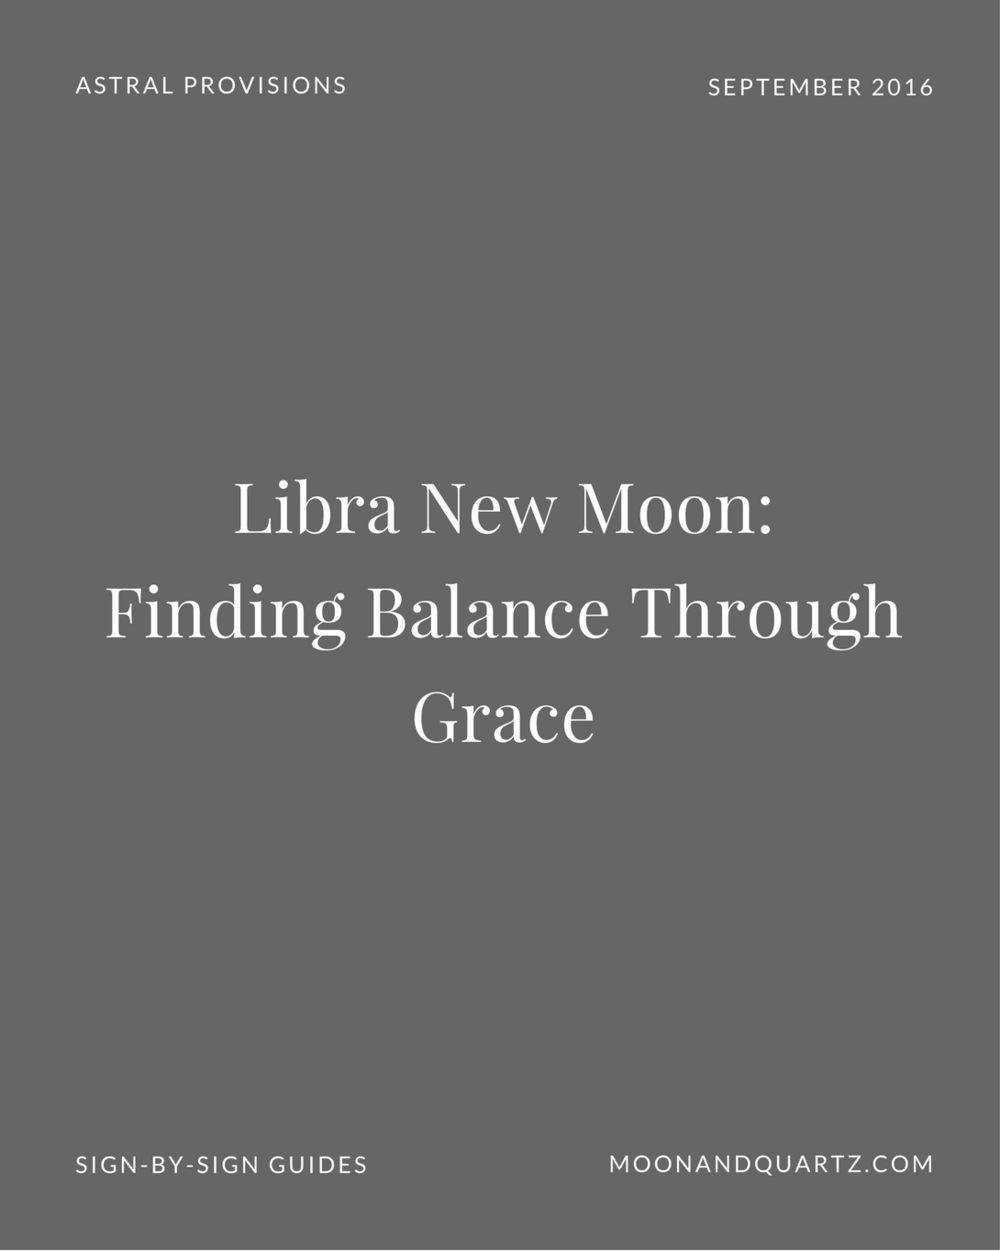 The Libra New Moon is an opportunity bring balance into our lives, particularly in the realm of our relationships. The Moon Guides are live with sign-by-sign guidance for each of the twelve signs with insight intended to help you laser-target your intentions for maximum potency: click through to download the guides for your sun and rising signs and grab all the details on the Libra New Moon!